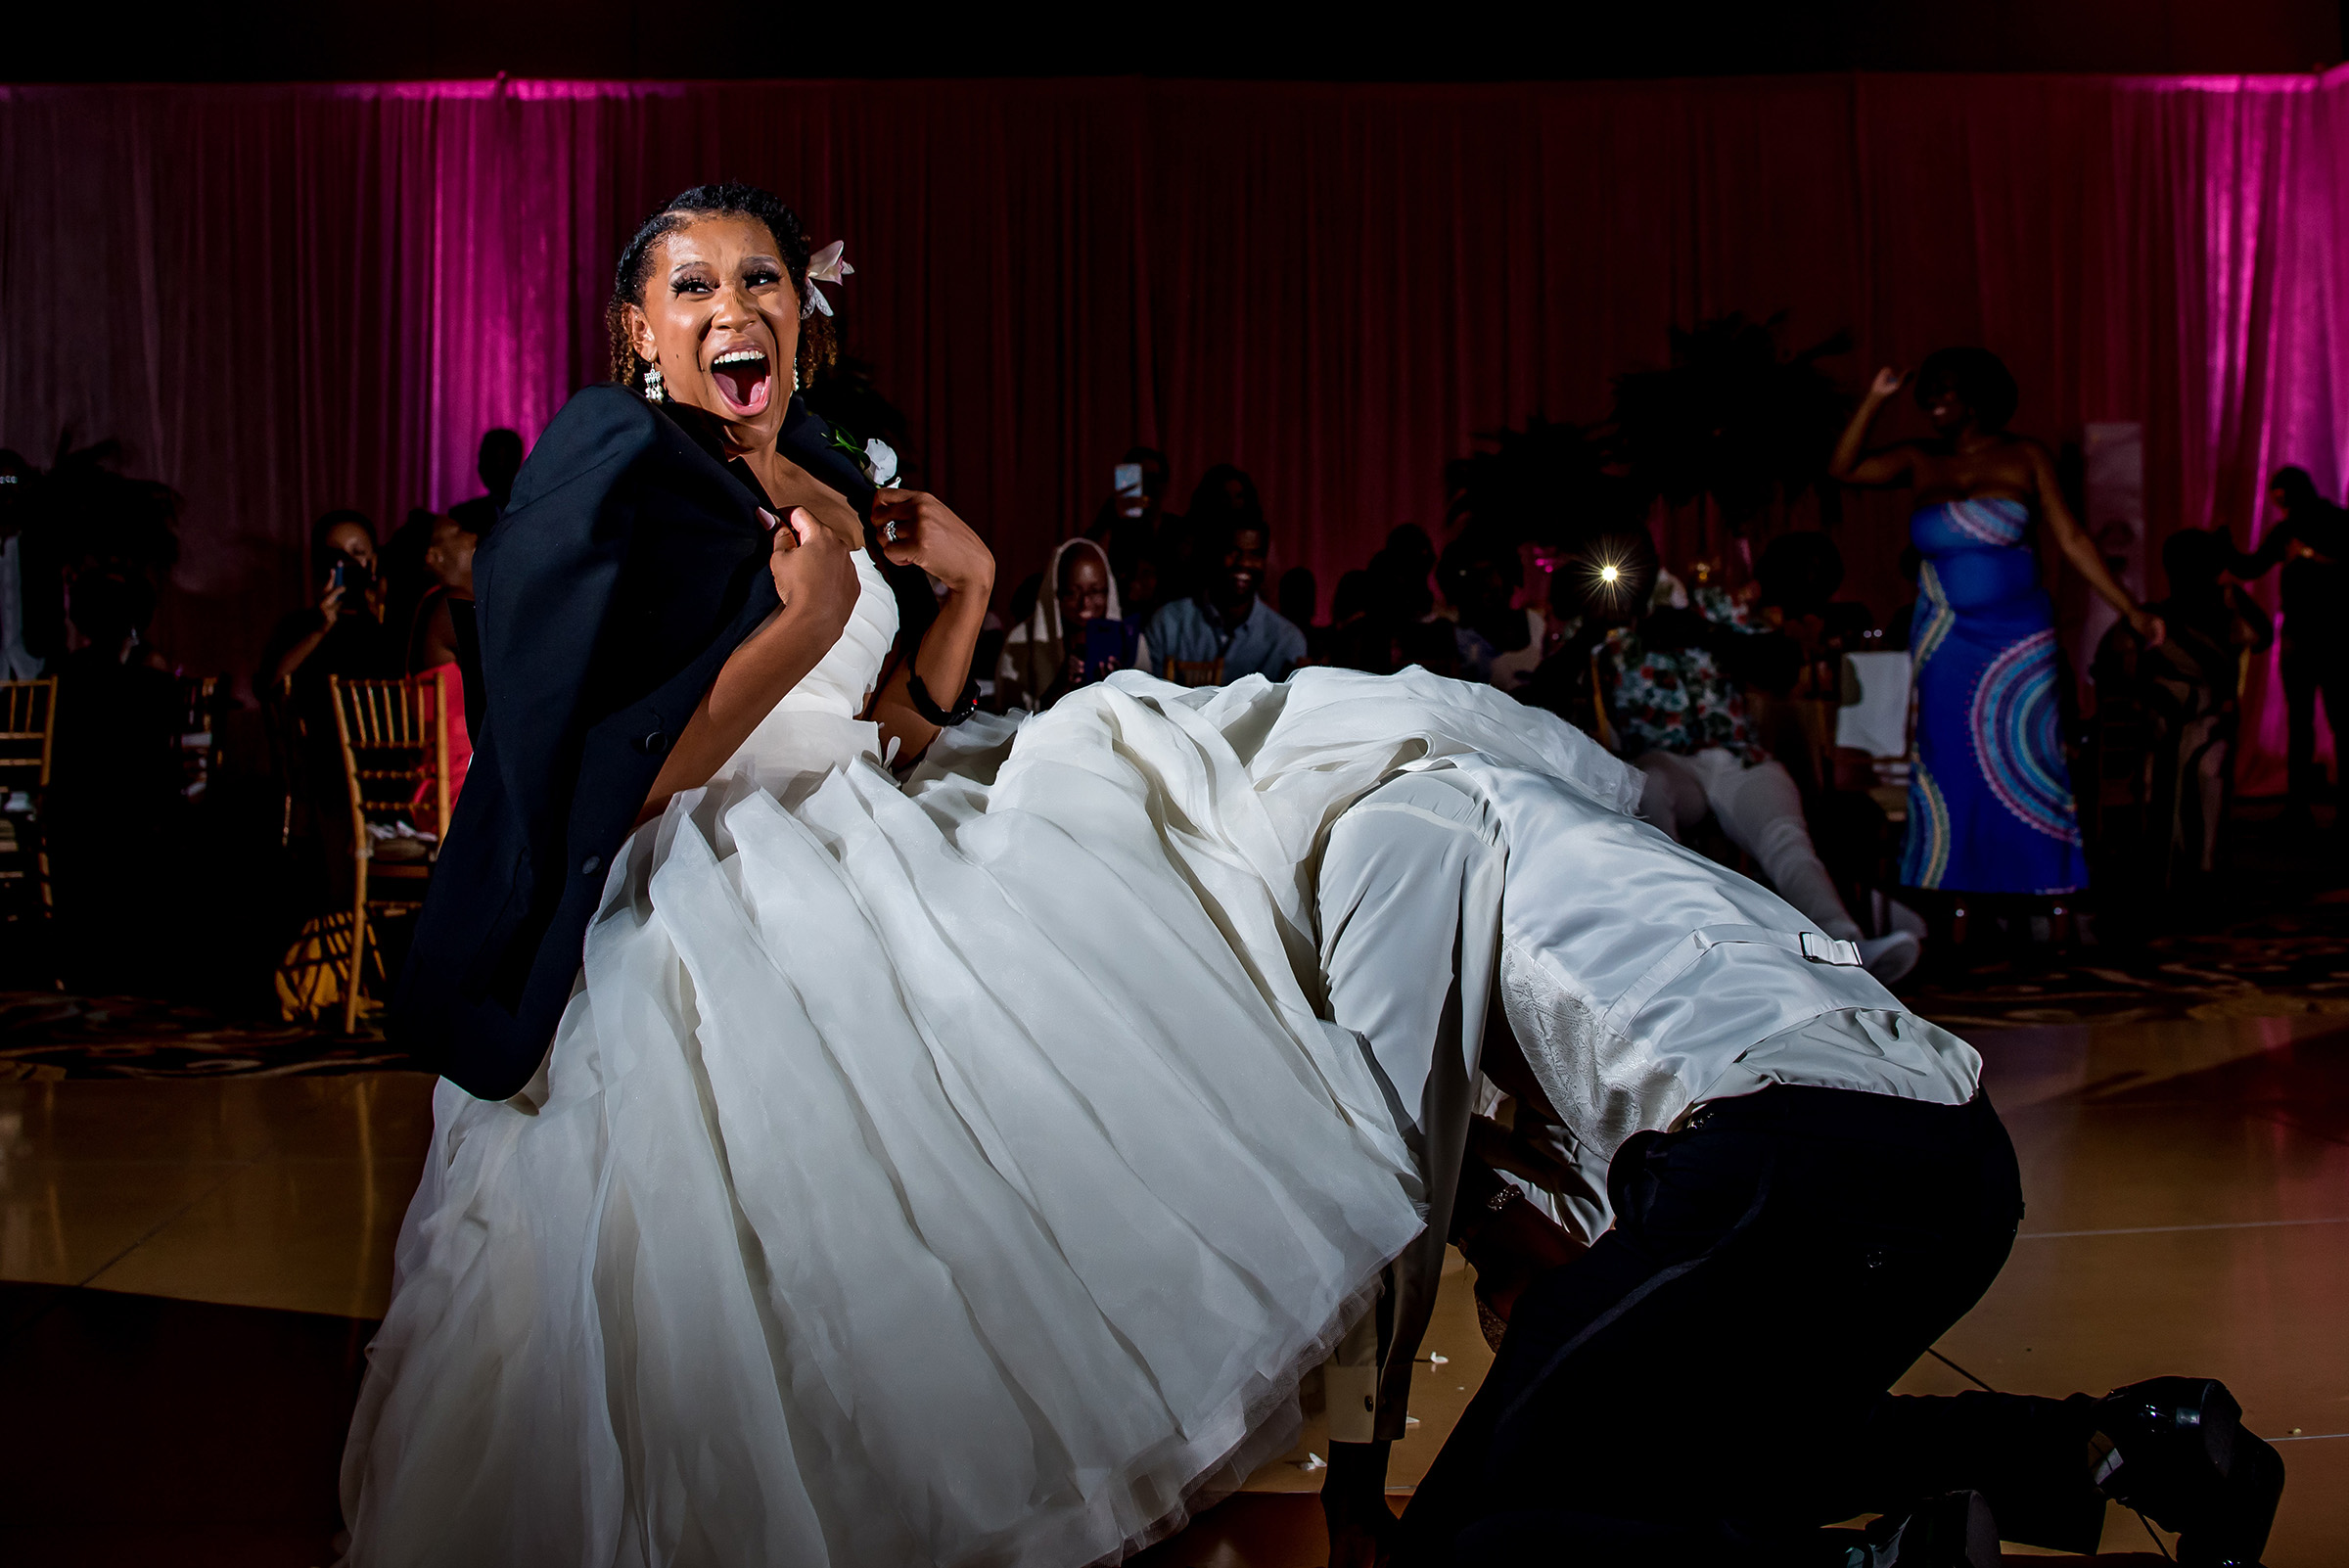 Hilarious shot of man under brides gown - photo by Gloria Ruth Photography